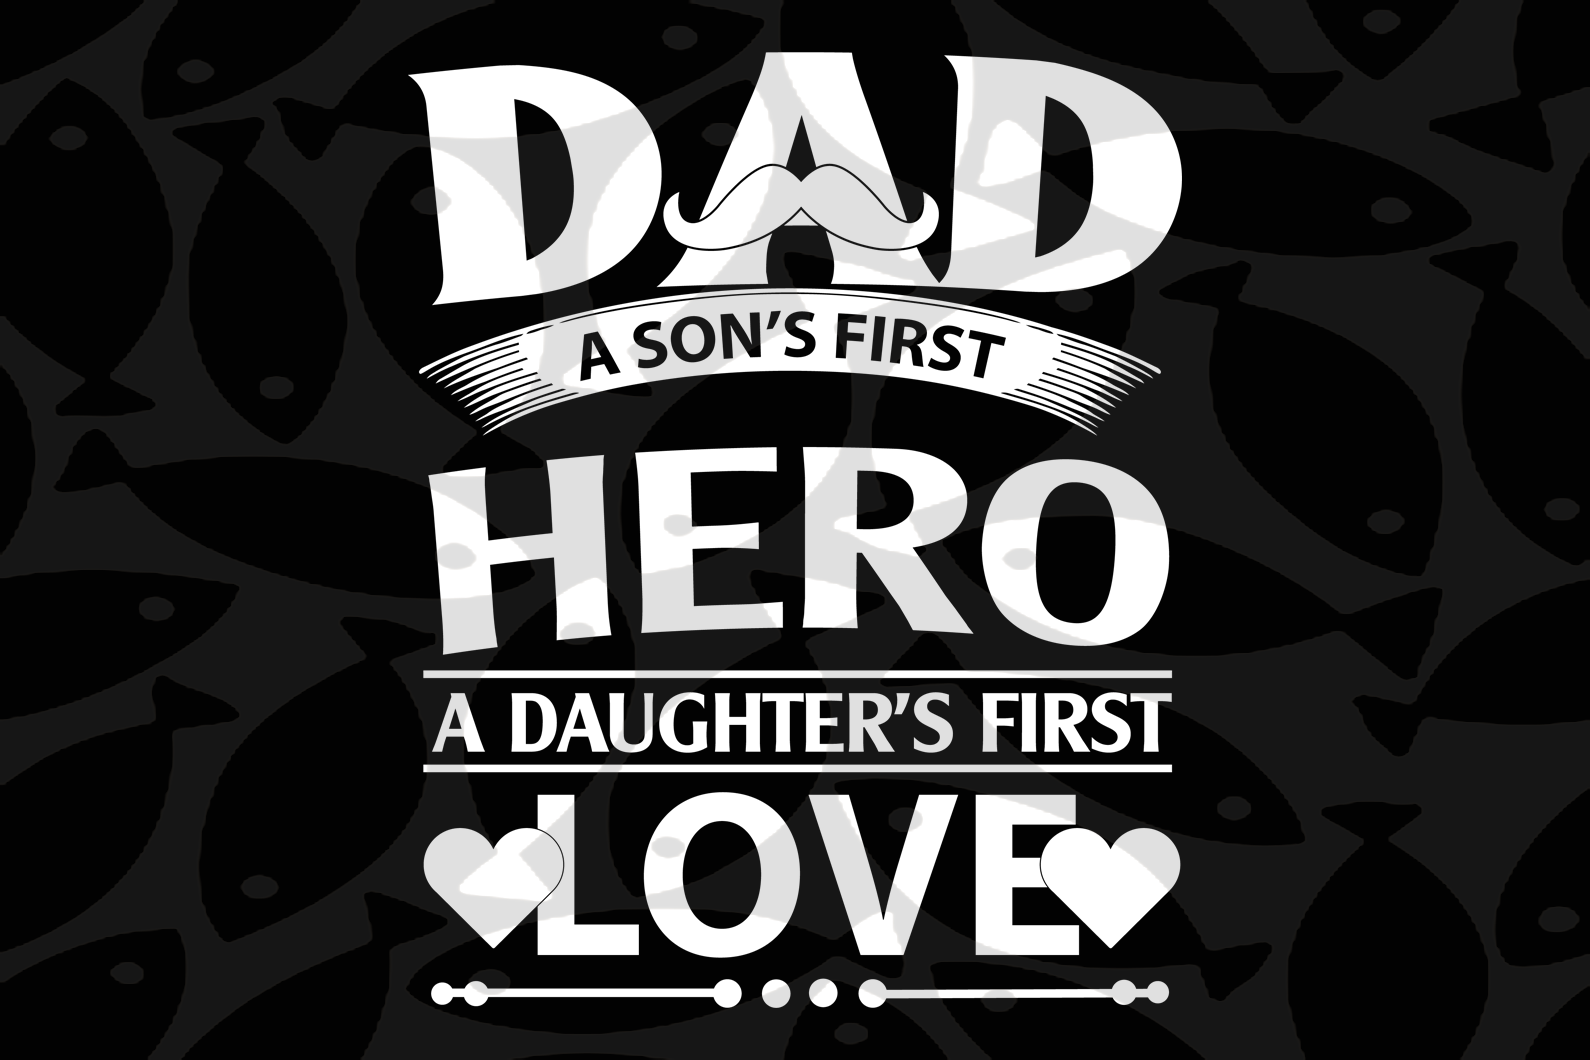 Dad a son's first hero a daughter's first love, papa svg, baba svg,father's day svg, father svg, dad svg, daddy svg, poppop svg Files For Silhouette, Files For Cricut, SVG, DXF, EPS, PNG, Instant Download